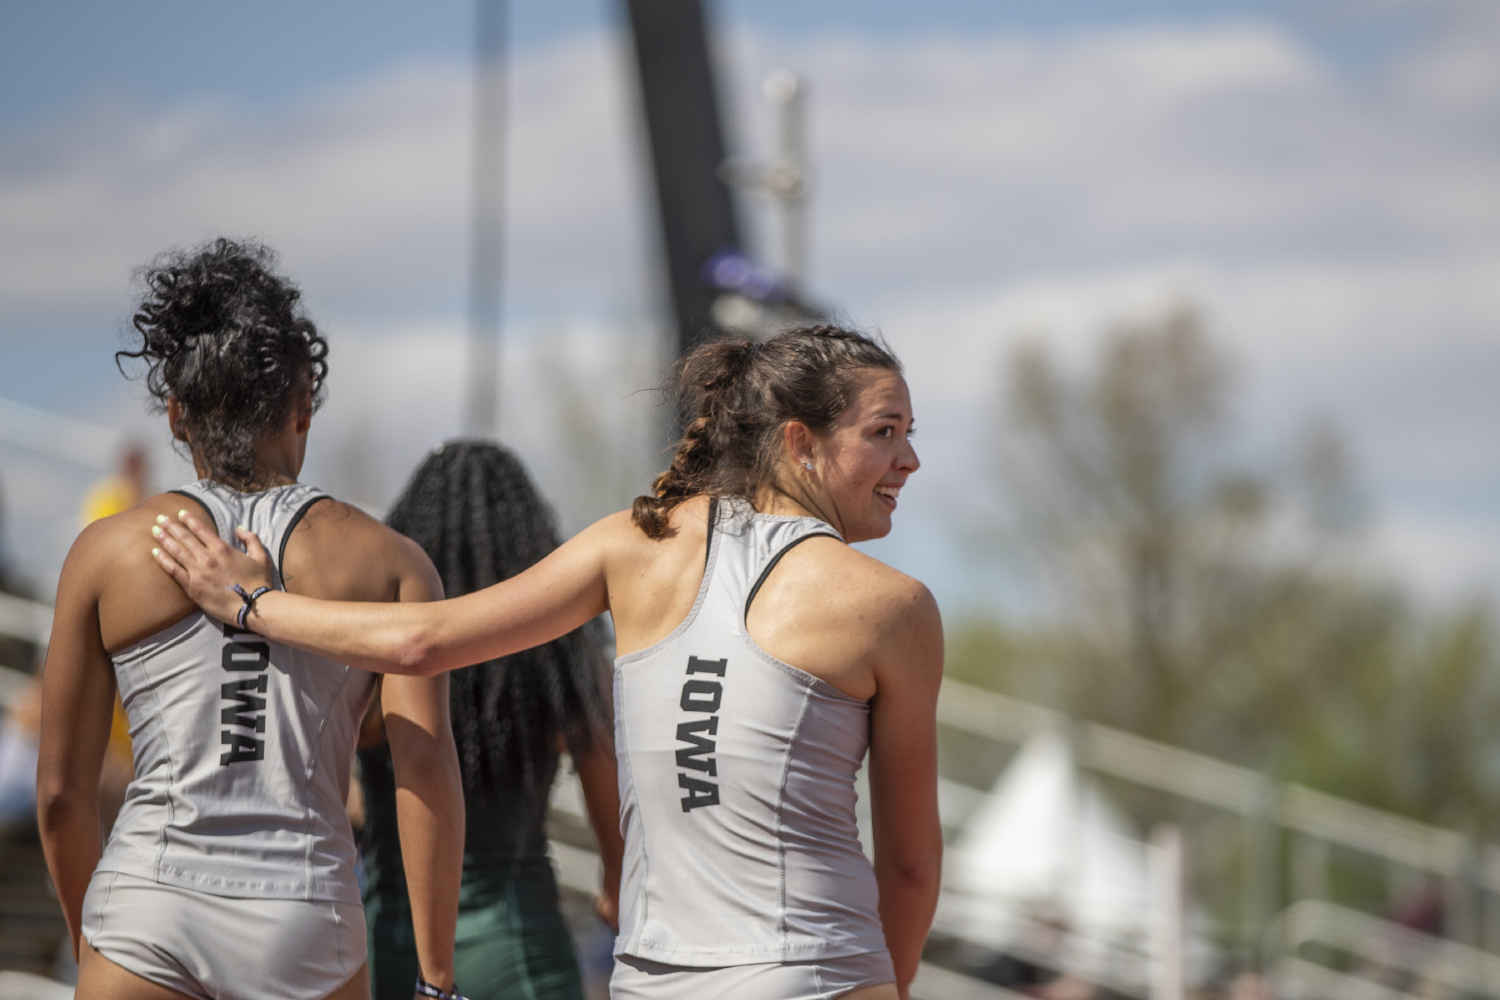 University of Iowa Heptathlete Jenny Kimbro congratulates teammate Tria Simmons after Simmons won their heat of the 200 meter run during the first day of the Big Ten Track and Field Outdoor Championships at Cretzmeyer Track on Friday, May 10, 2019. Simmons won the 200 meter run portion of the heptathlon with a time of 24.19 seconds.